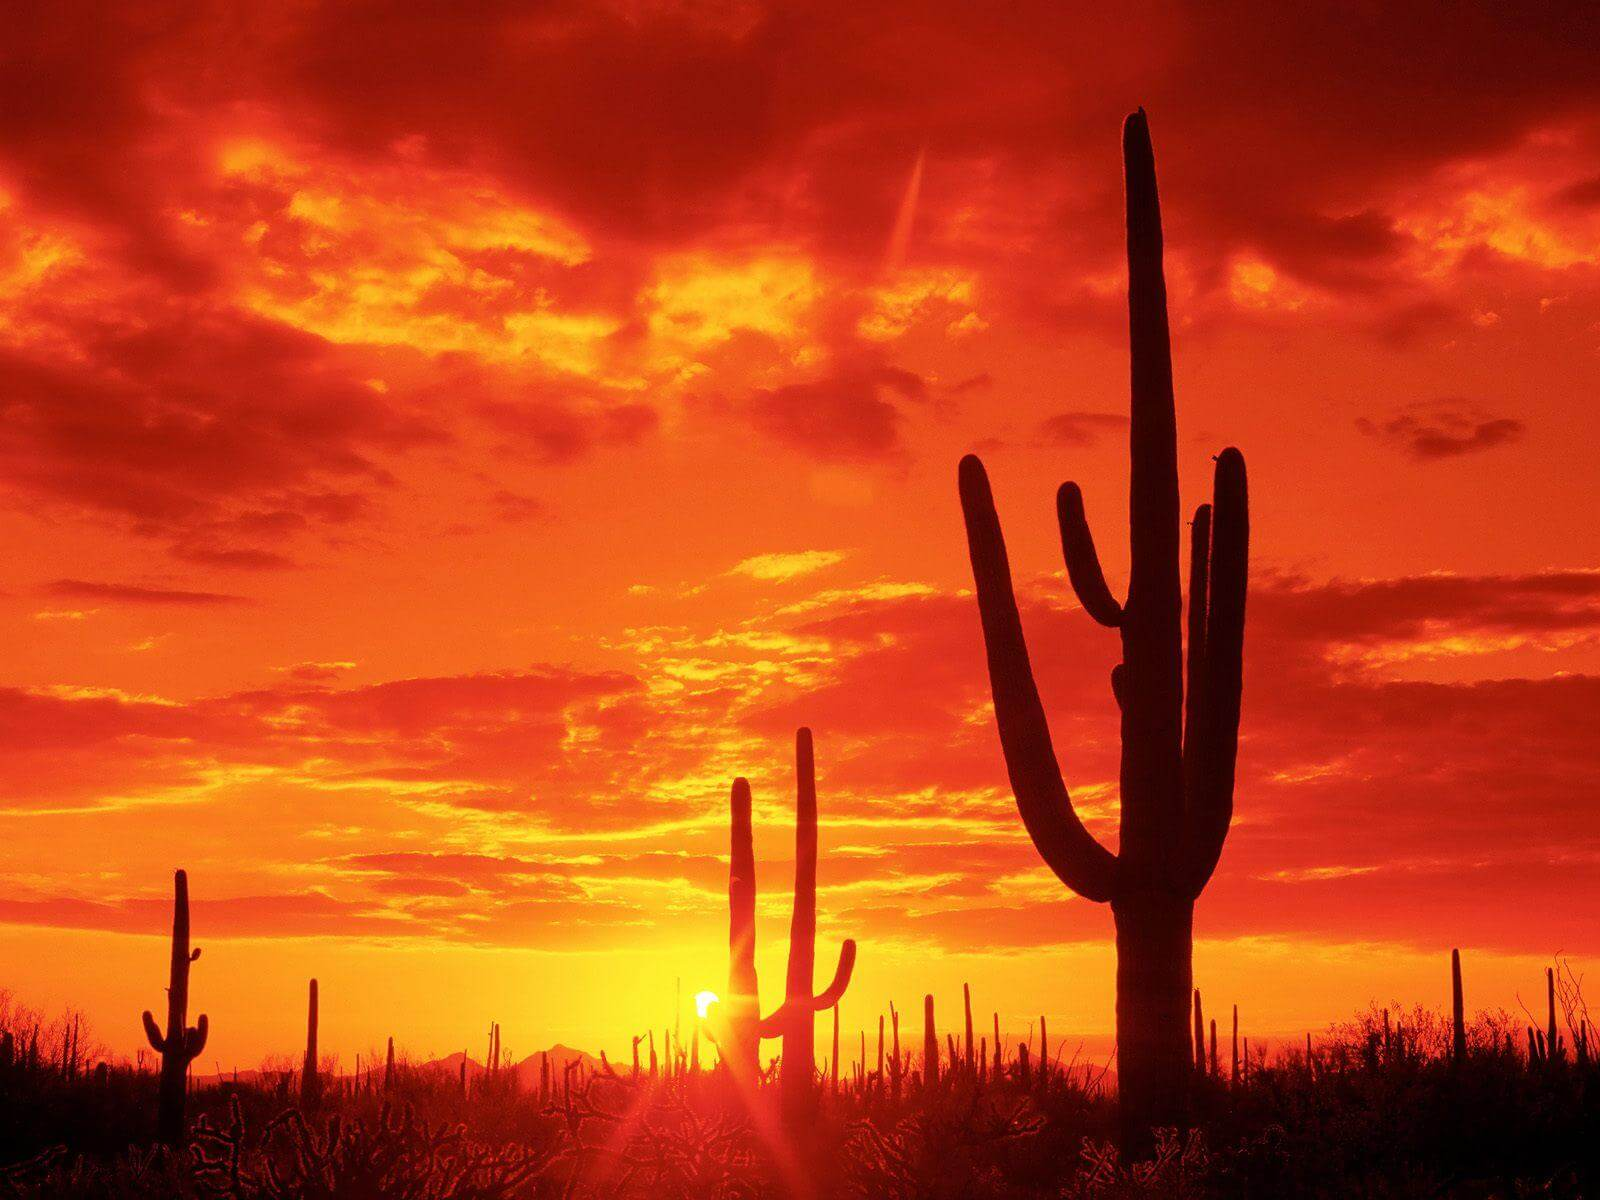 Here Are 10 Jaw Dropping Photos From Arizona To Get You Through Your Week.